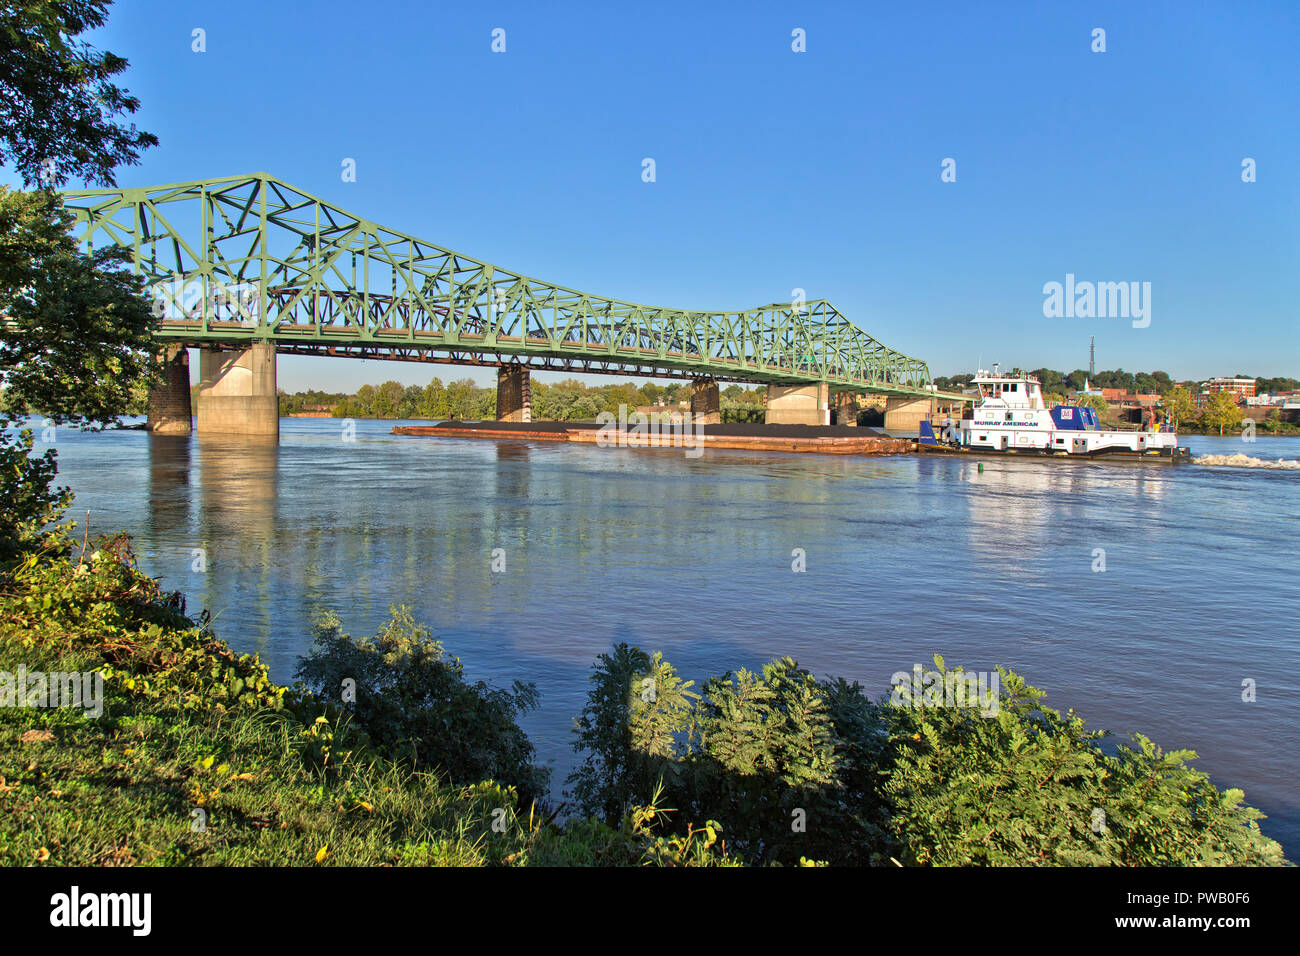 Tugboat pushing coal barges, Ohio River, Parkersburg in the background,  Washington County, West Virginia. - Stock Image